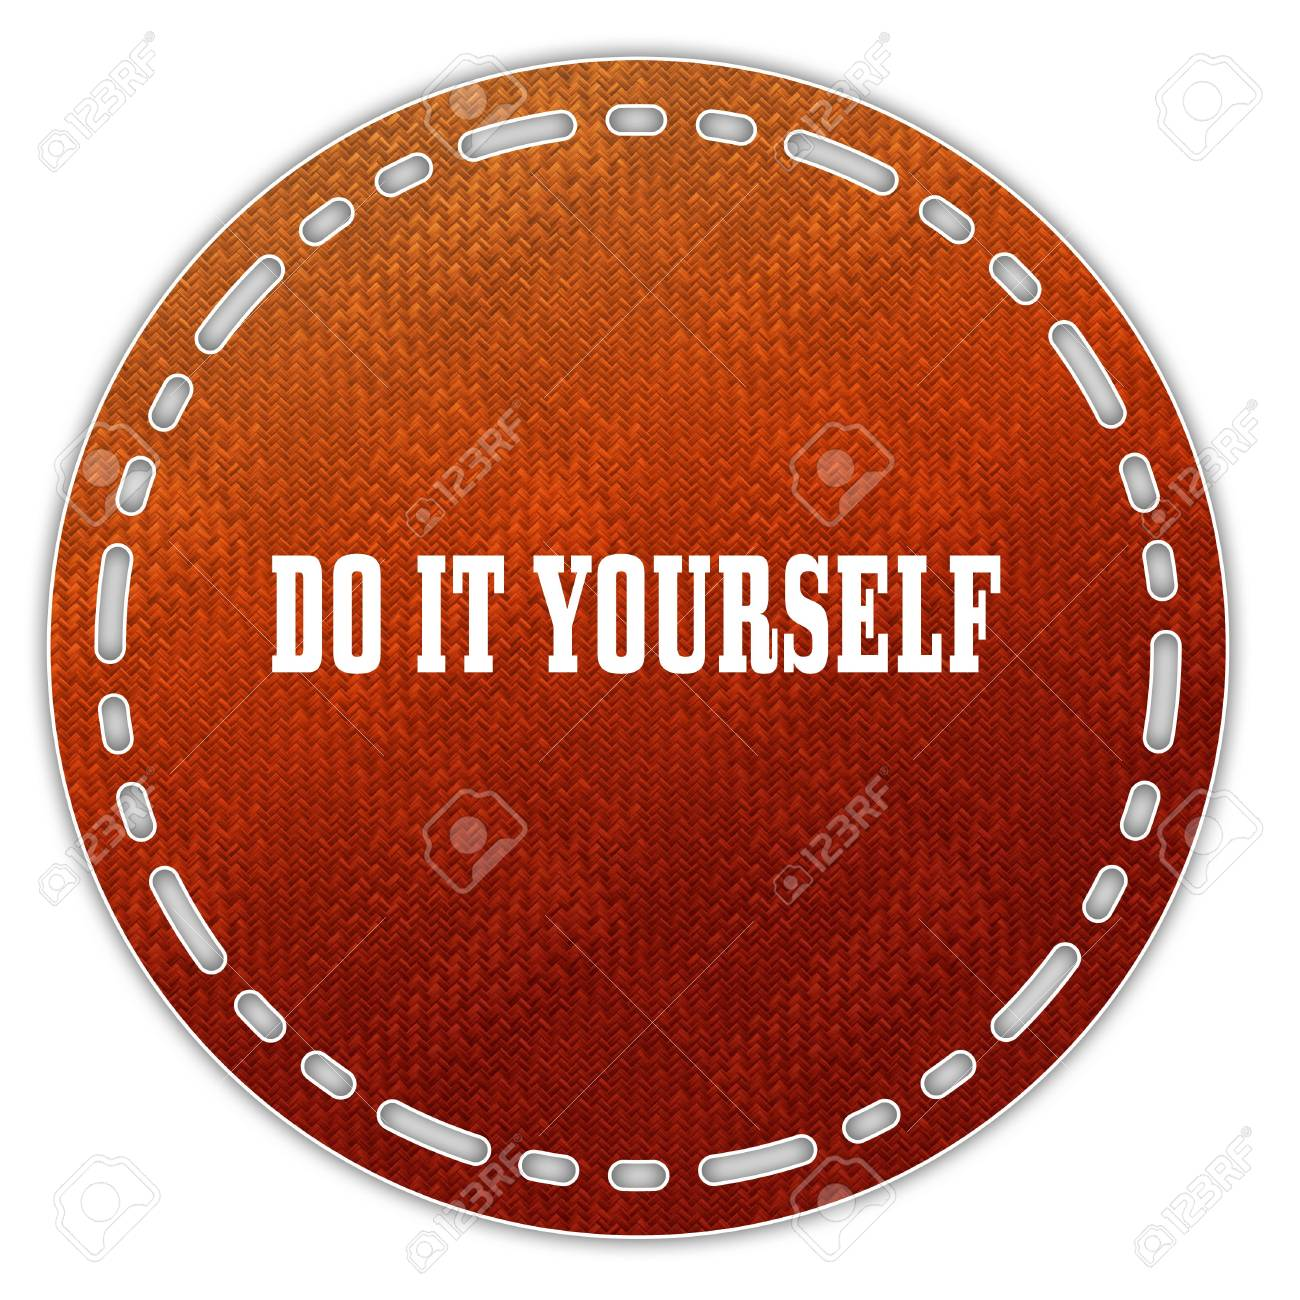 Round orange pattern badge with do it yourself message illustration illustration round orange pattern badge with do it yourself message illustration graphic design concept image solutioingenieria Image collections